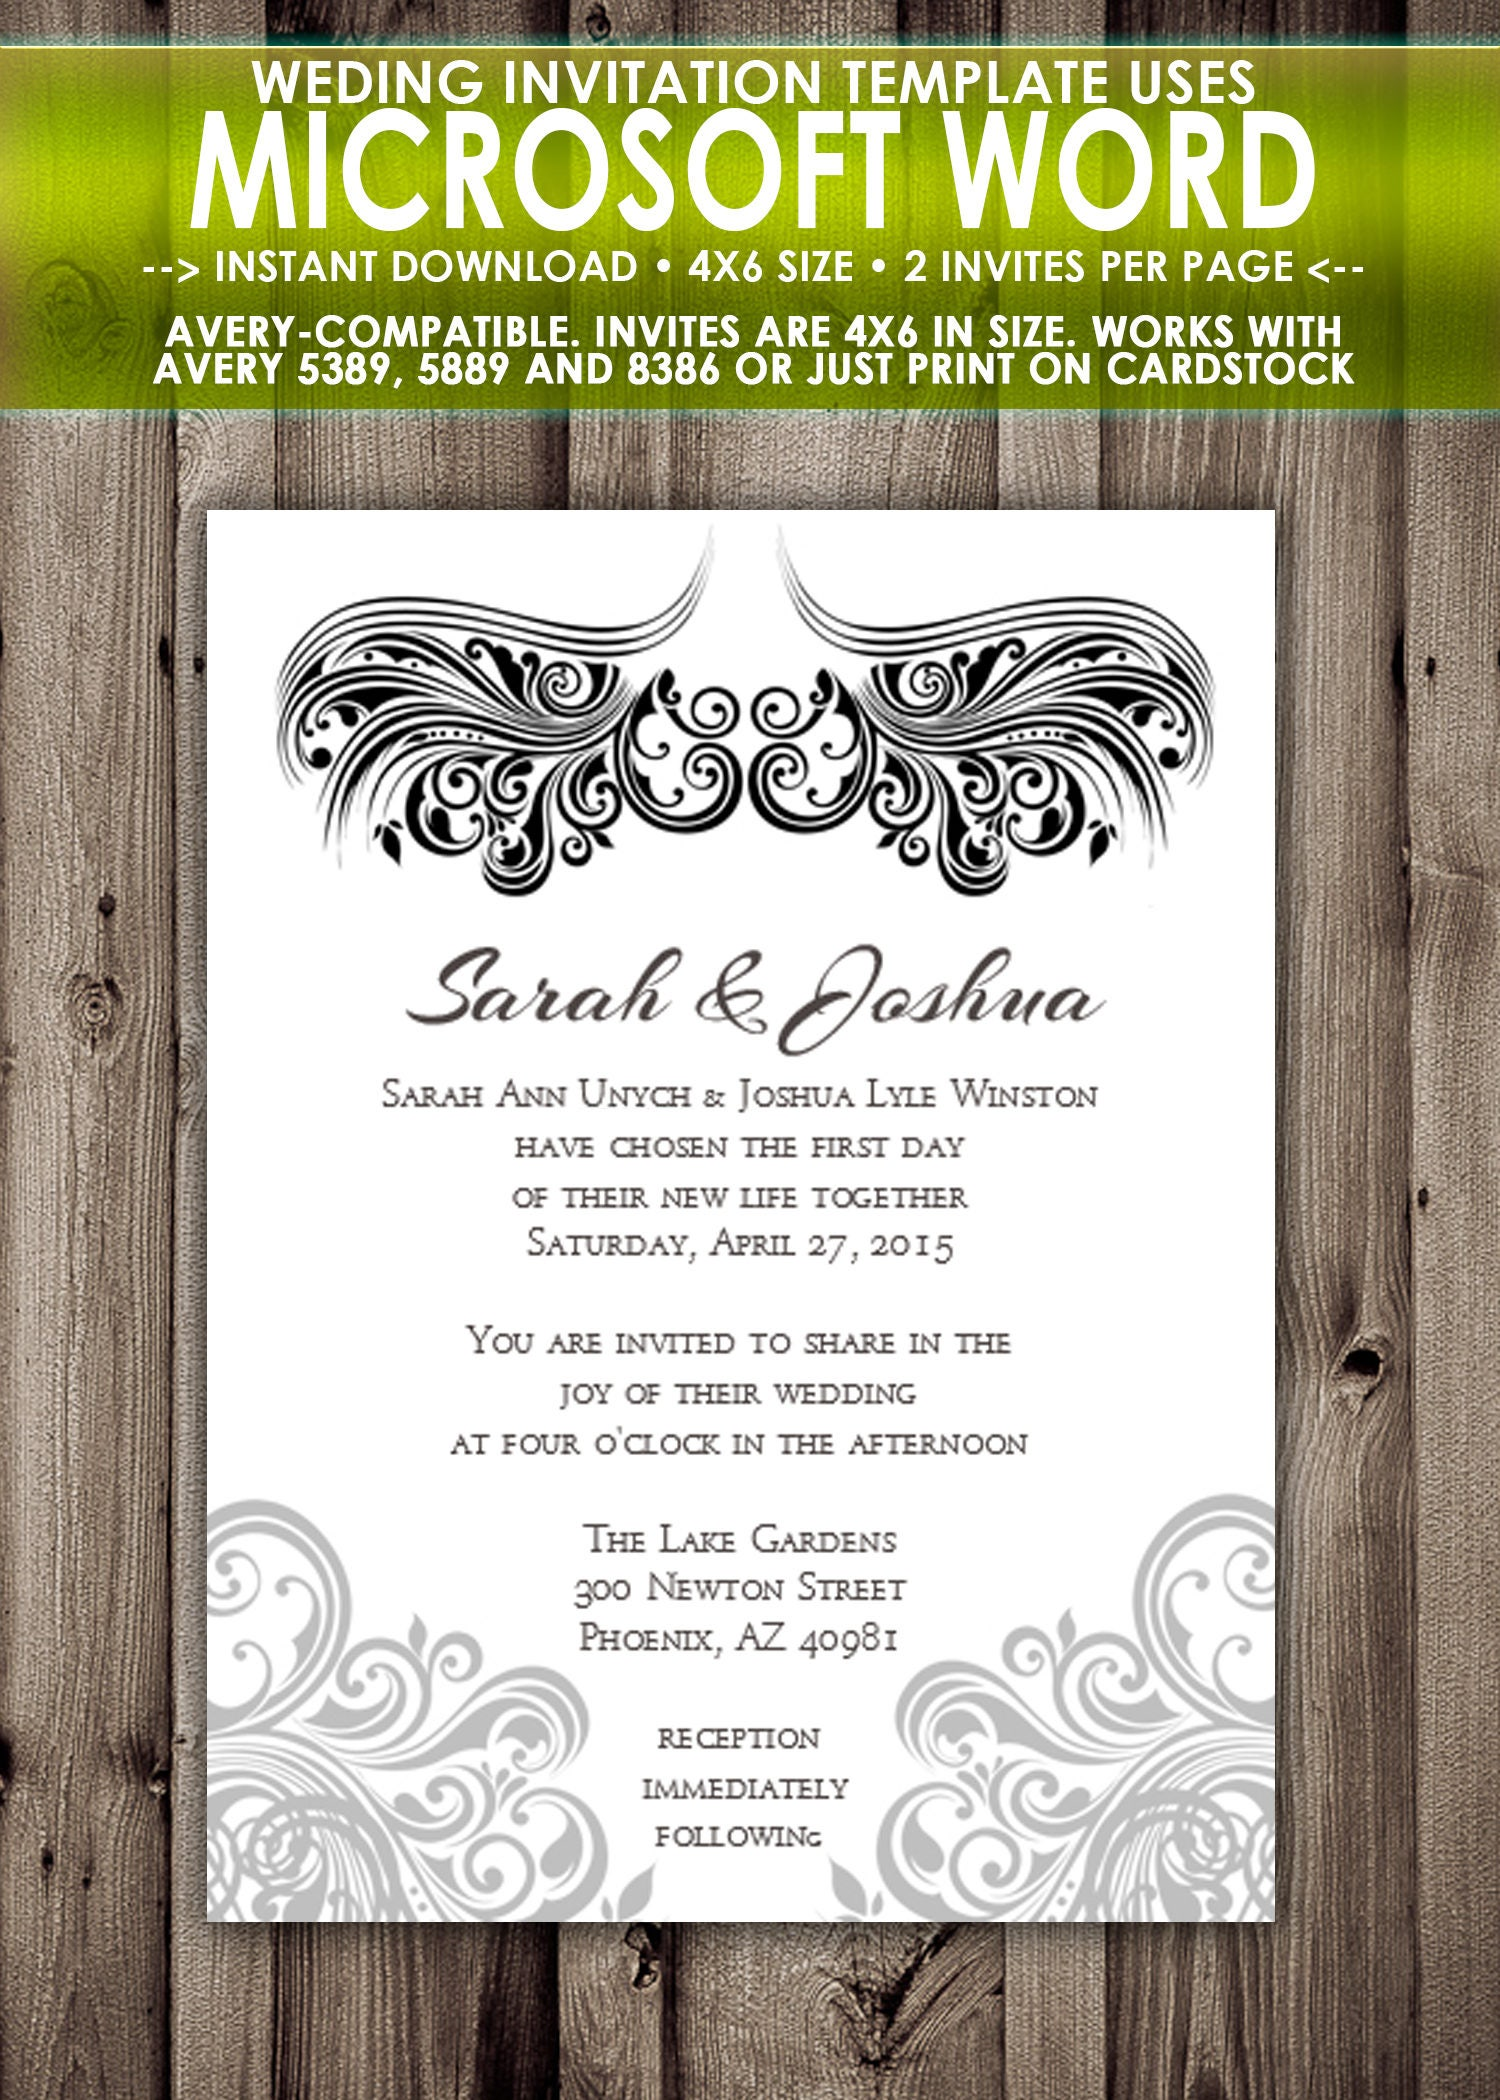 Printable Wedding Invitation Microsoft Word Template 4x6 Etsy